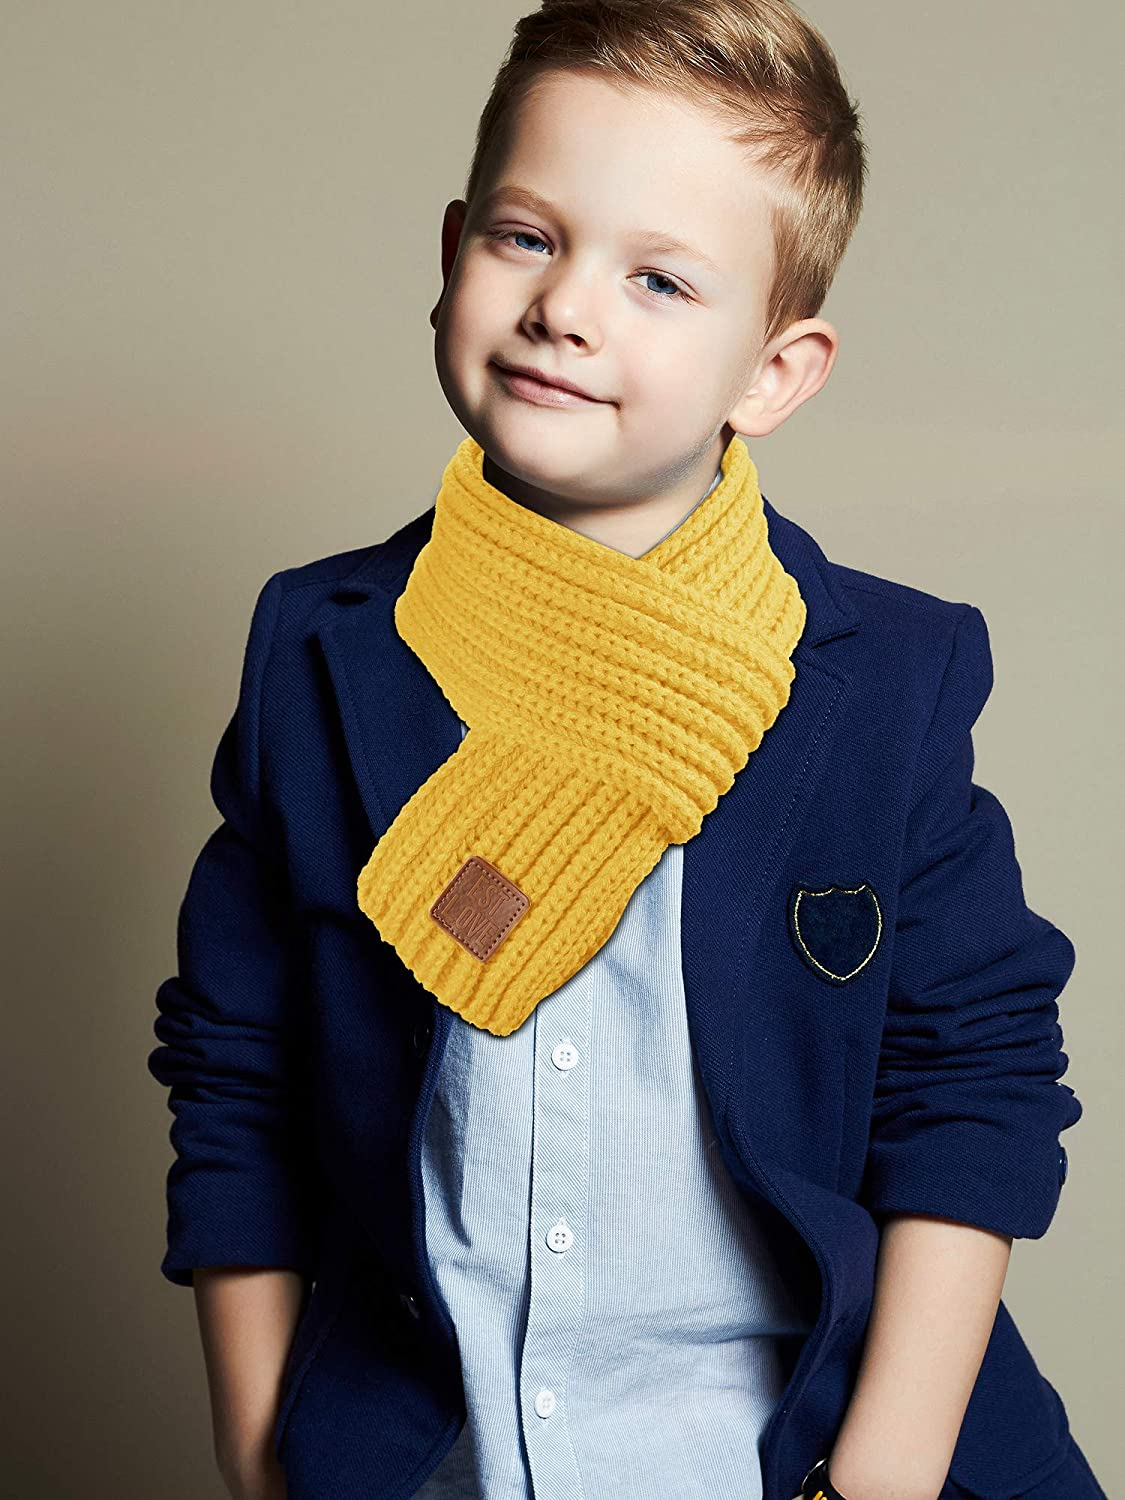 2 Pieces Kids Winter Warm Knit Scarves Warm Scarf Neck Warmer for Toddlers Boys Girls